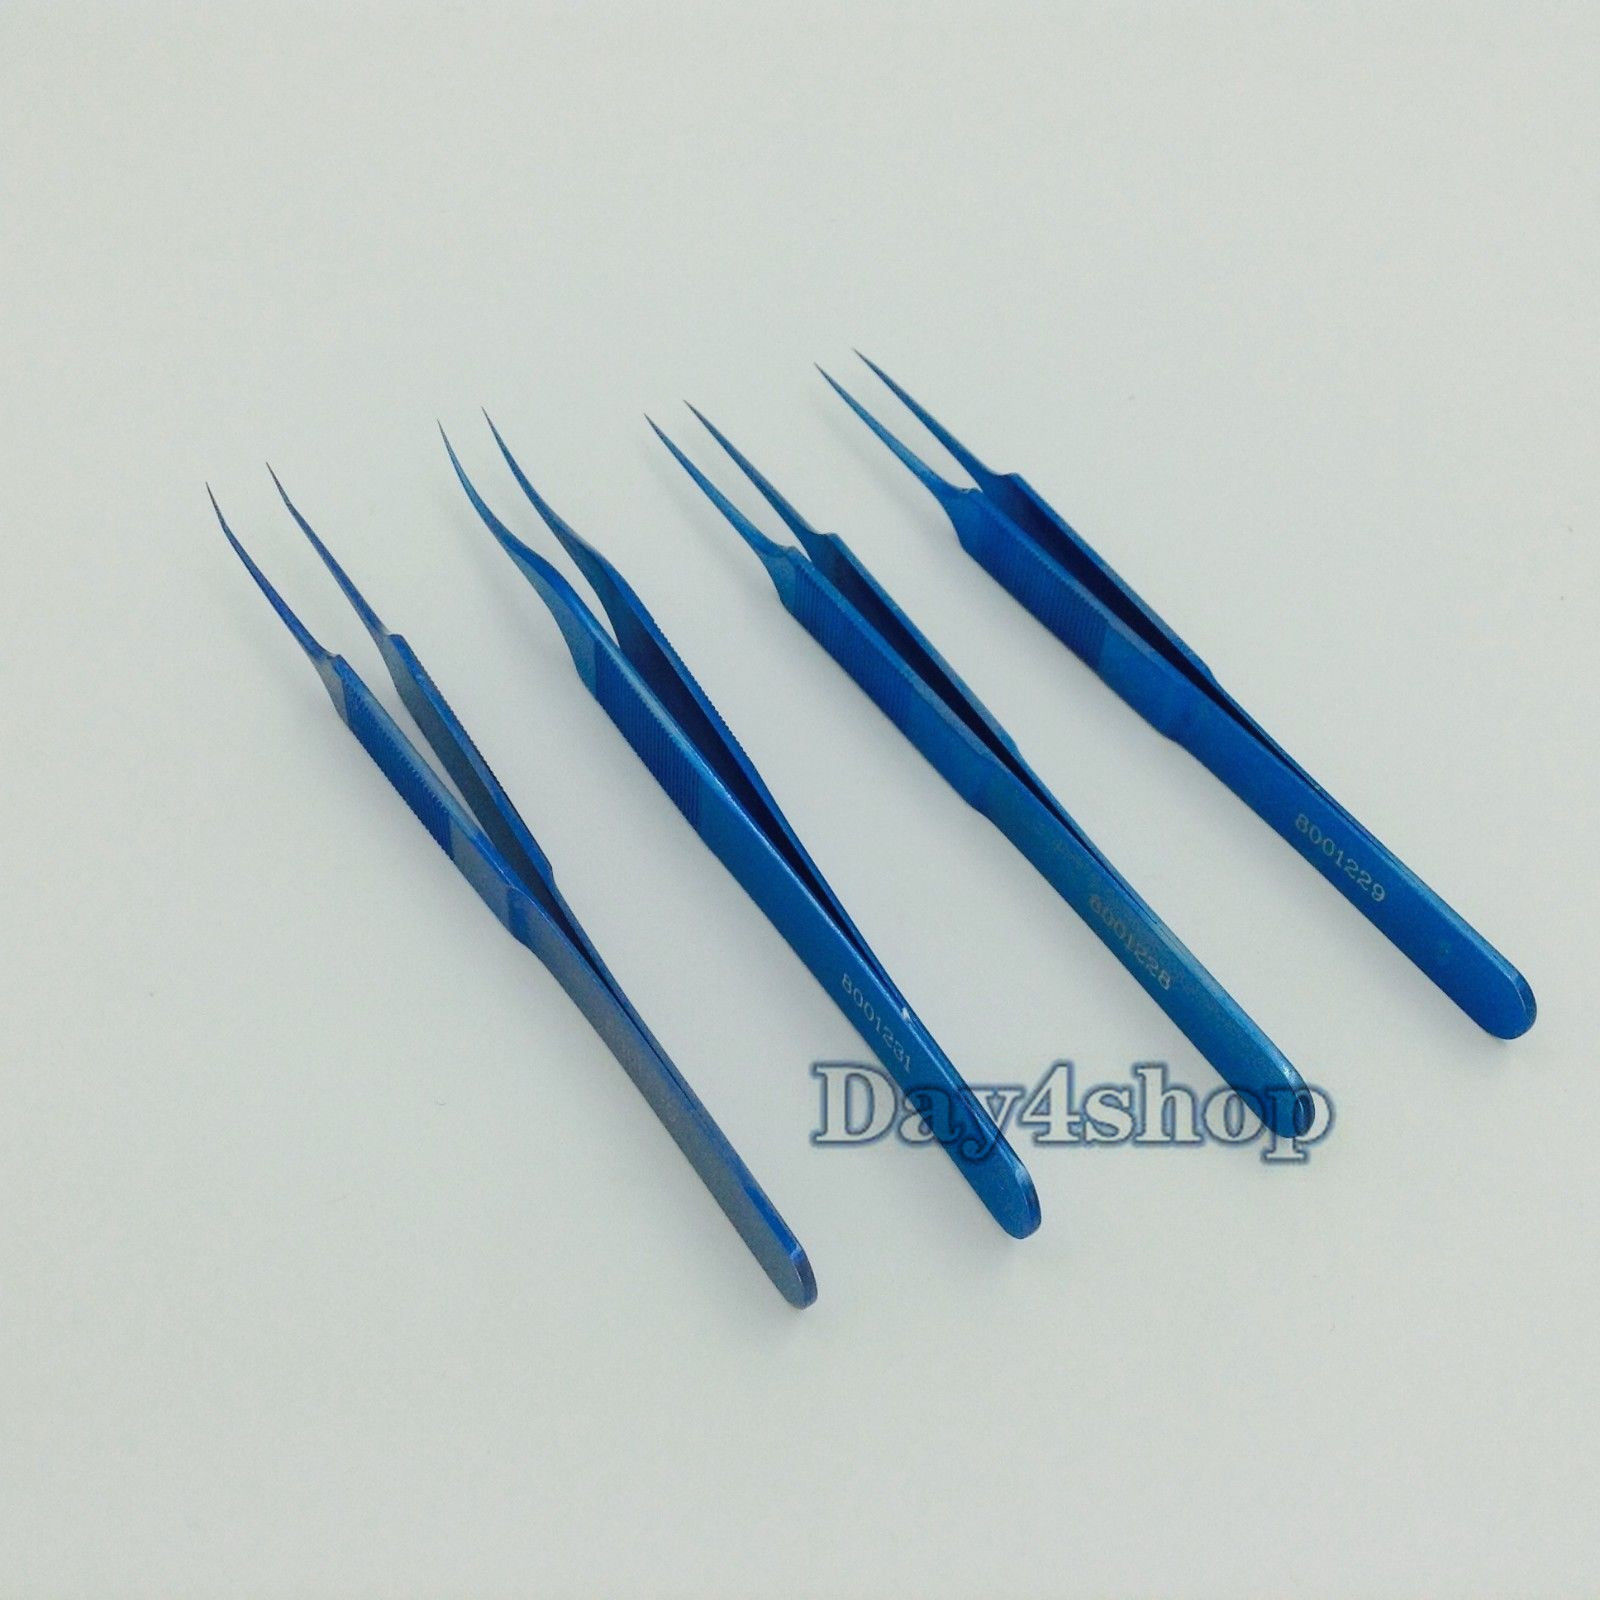 New 4pcs/set different Jeweler Style Forceps ophthamic surgical instrumentsNew 4pcs/set different Jeweler Style Forceps ophthamic surgical instruments